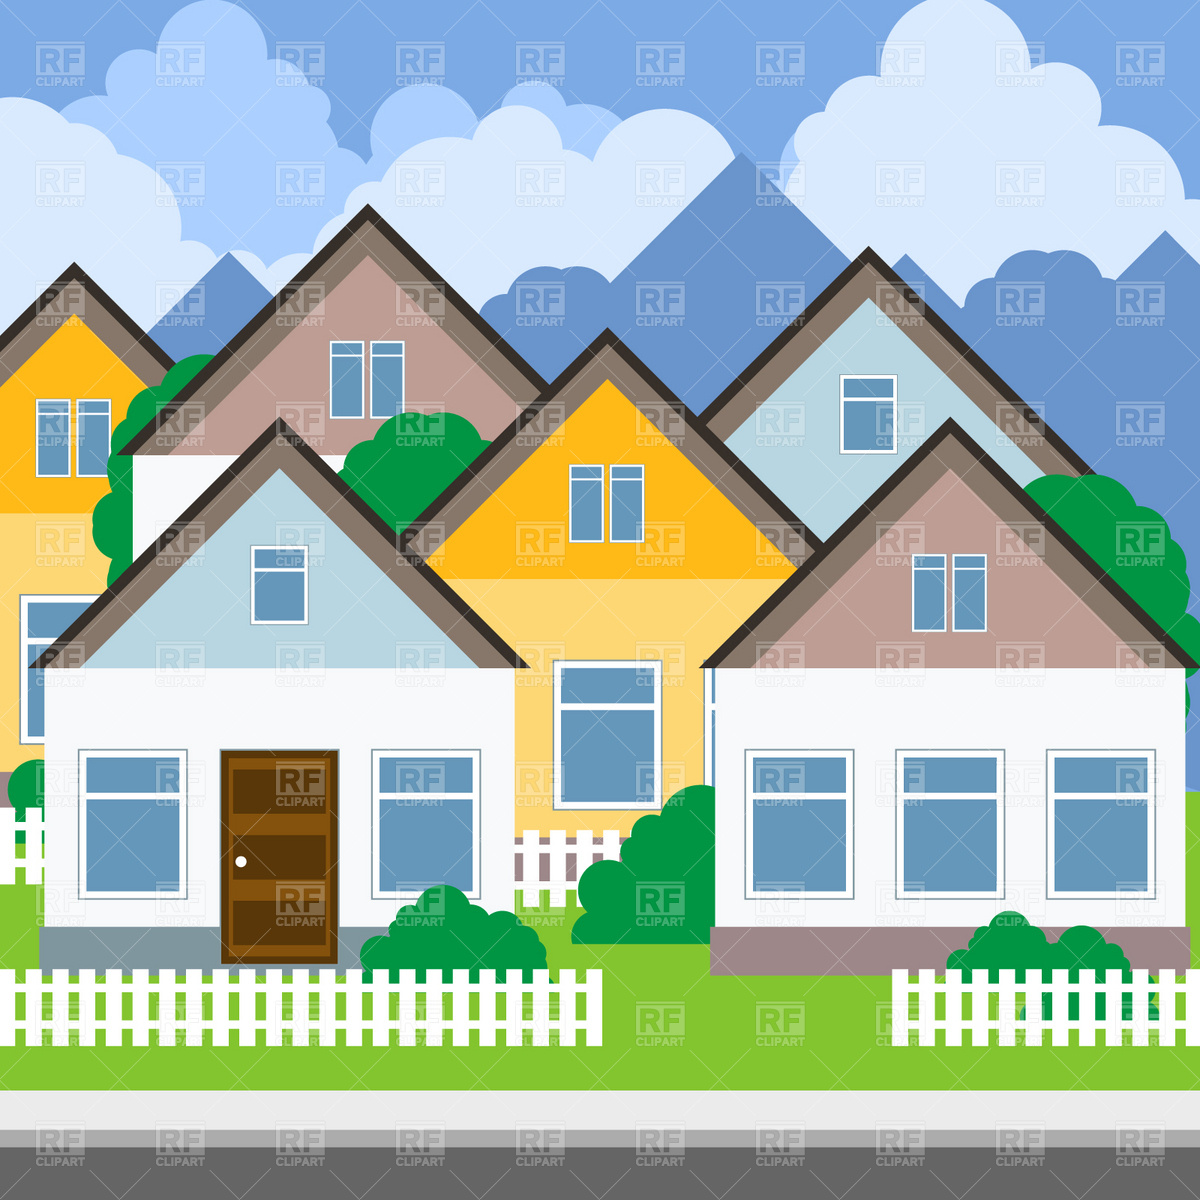 Housing estate clipart graphic royalty free Collection of 14 free Town clipart housing estate crabs ... graphic royalty free